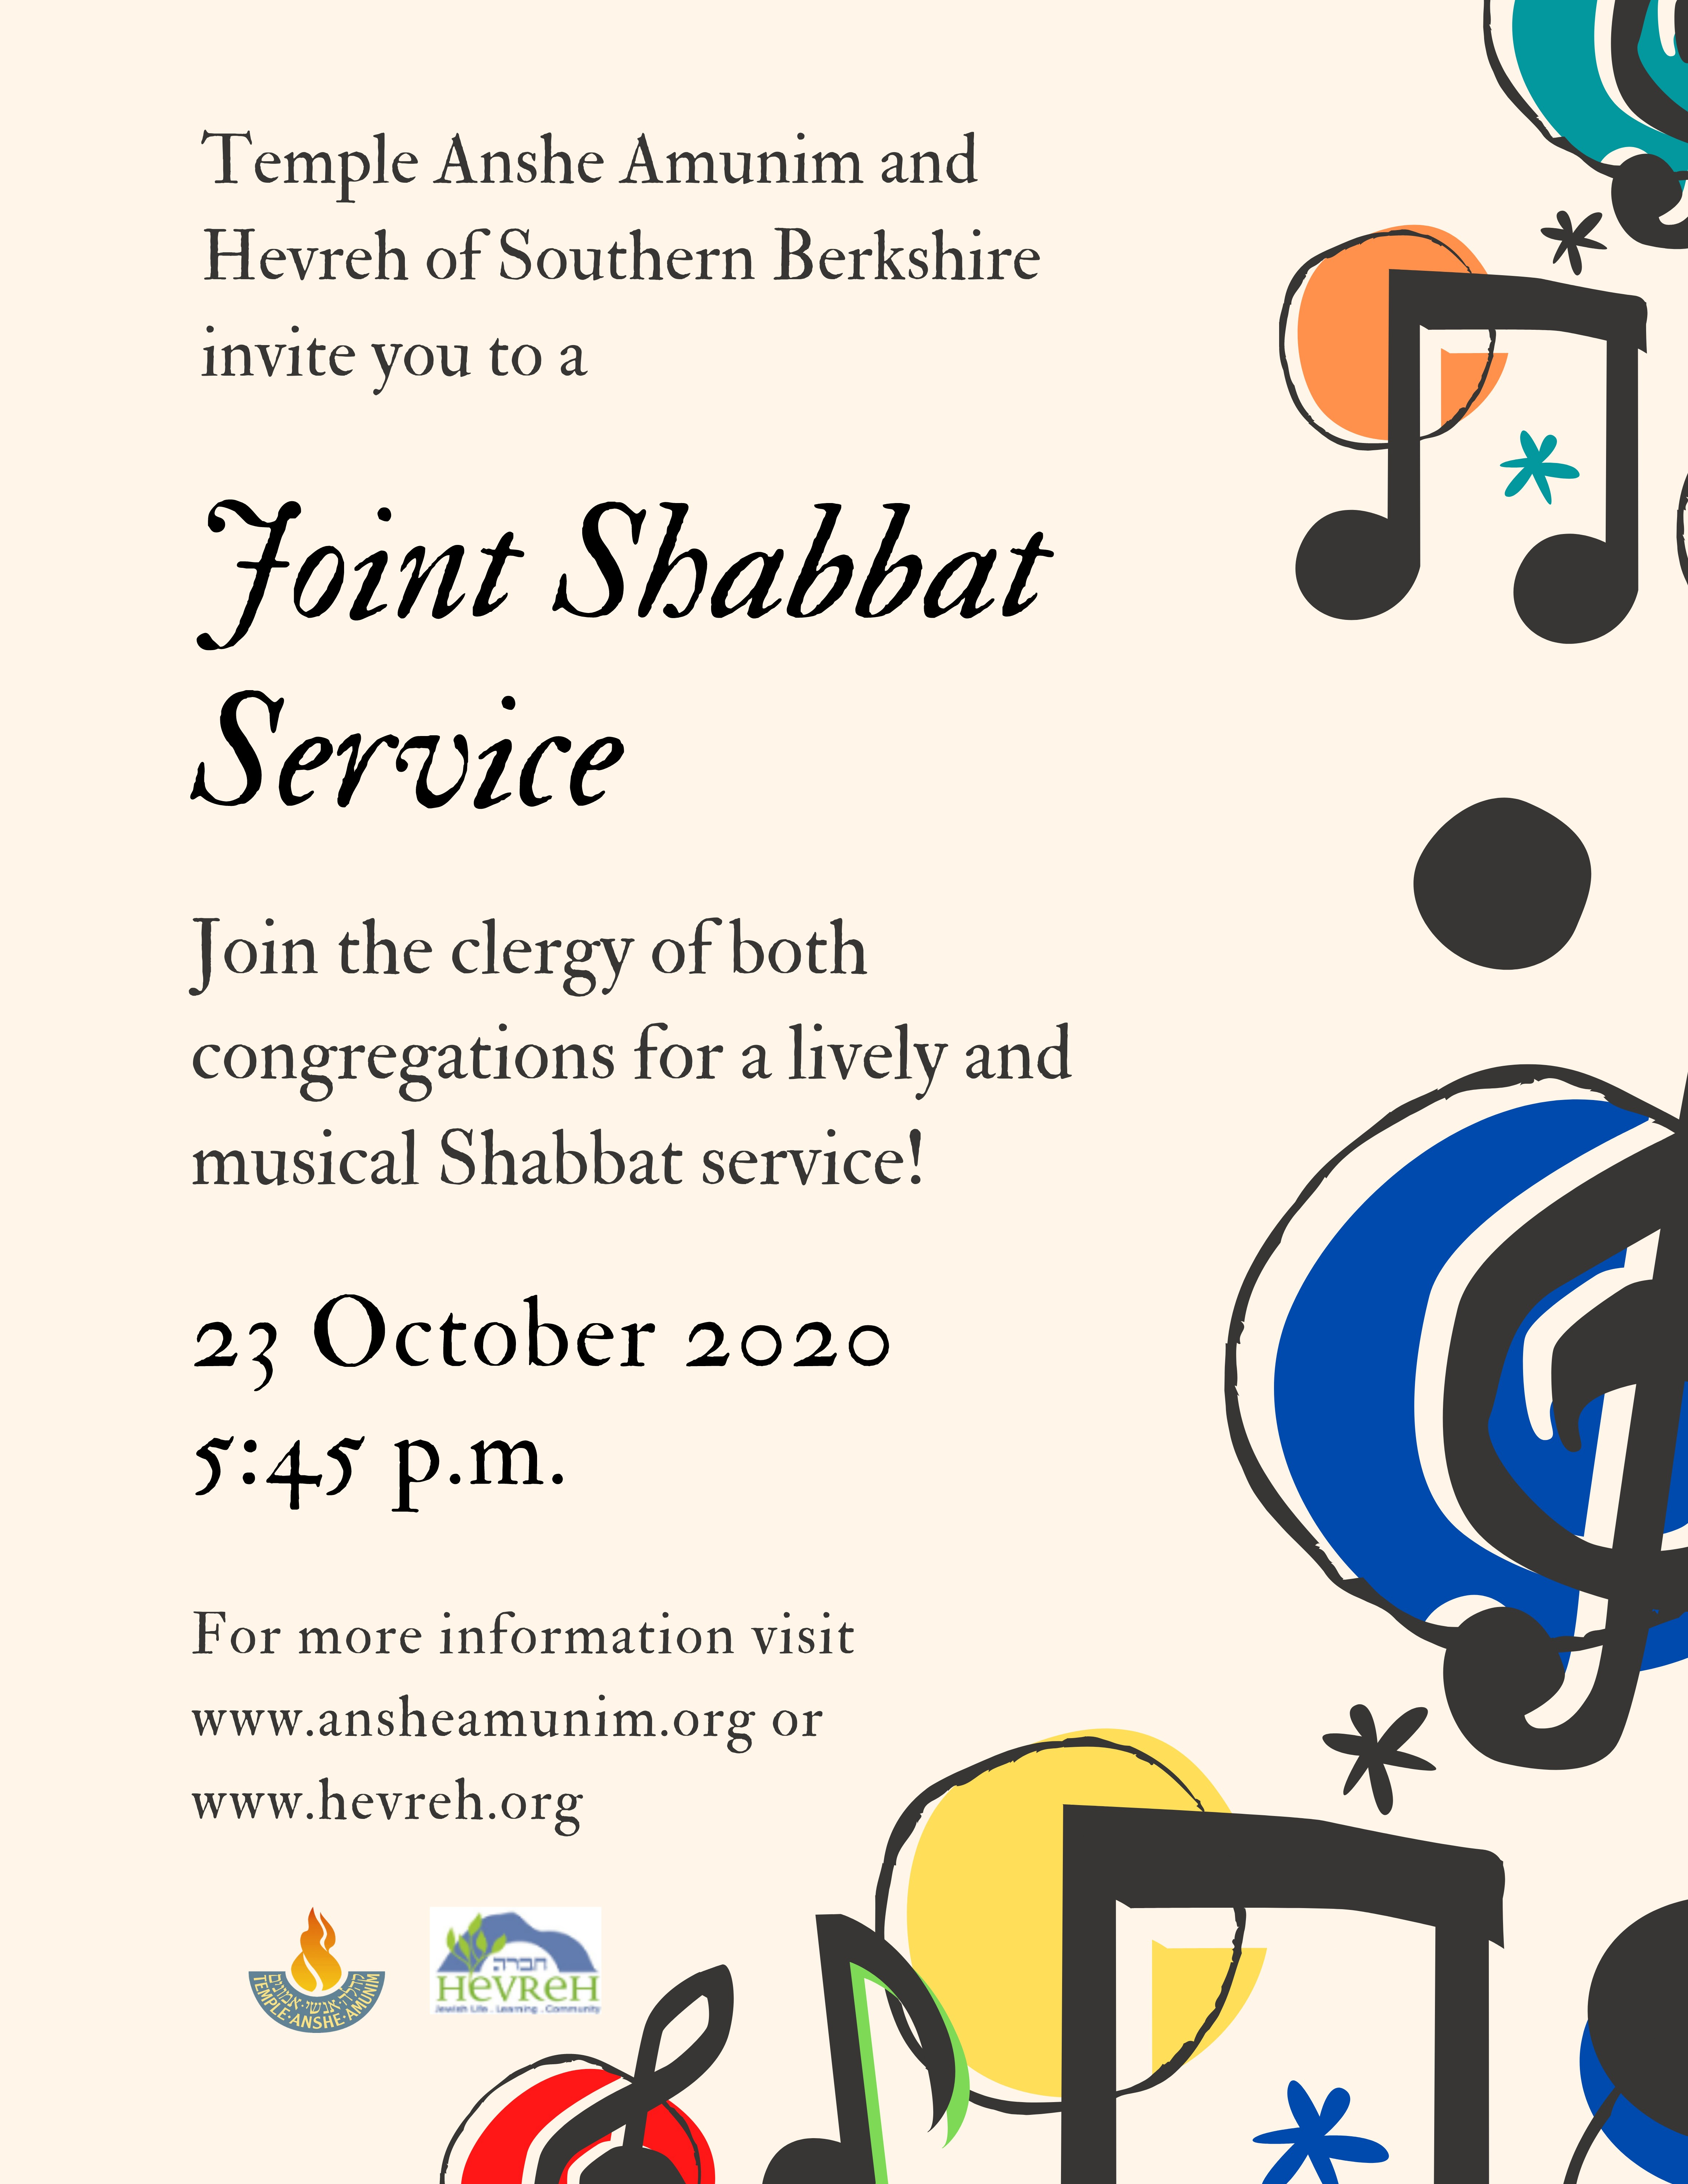 Banner Image for Joint Shabbat Service - Temple Anshe Amunim and Hevreh of Southern Berkshire